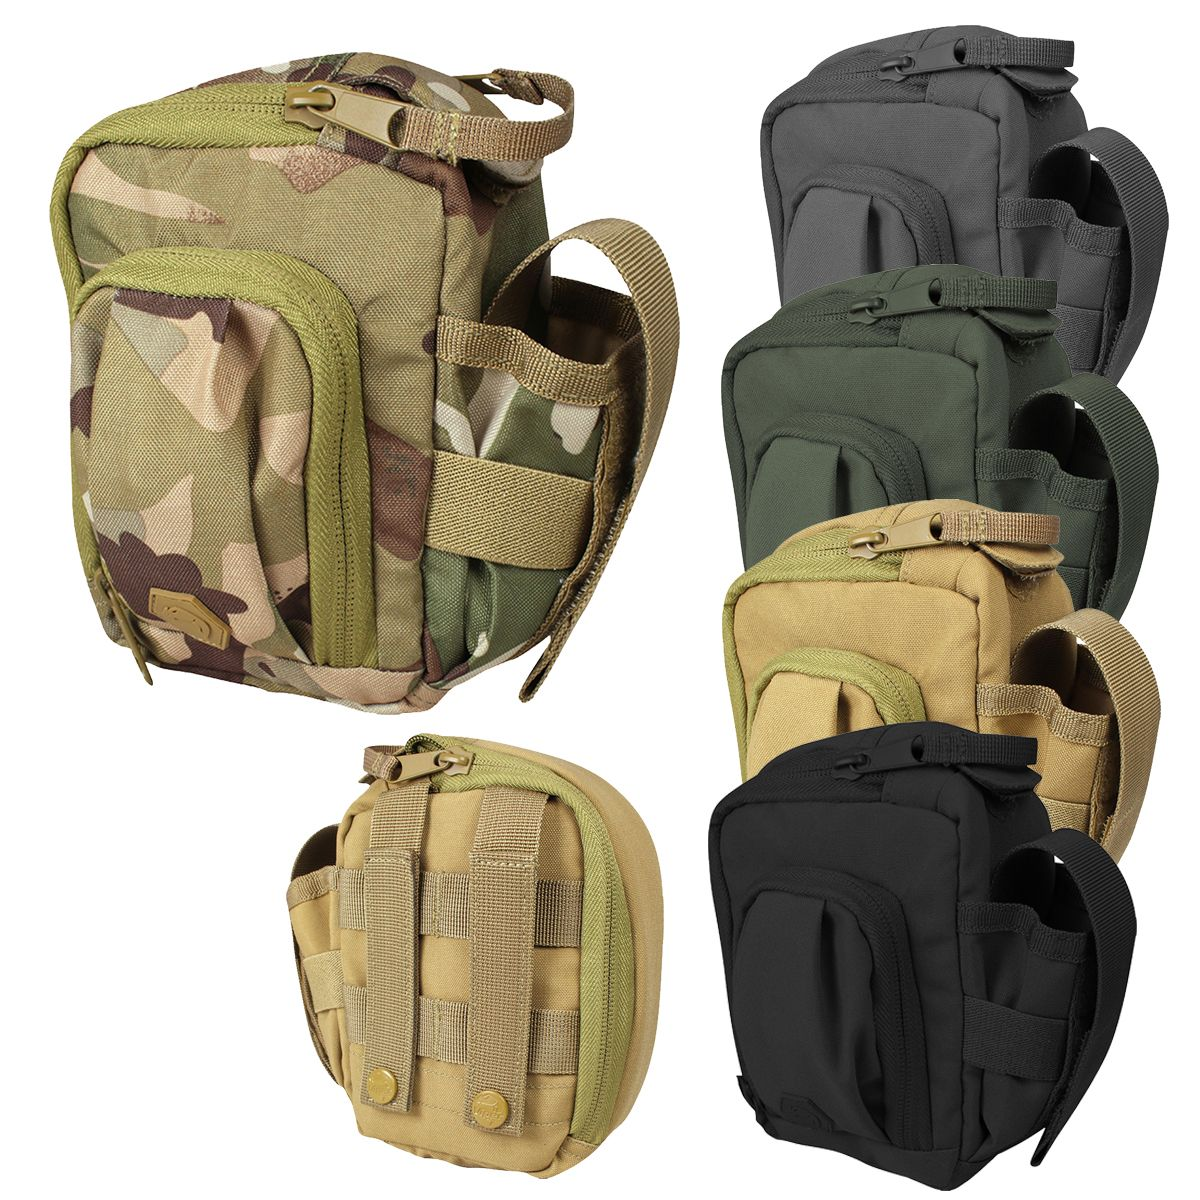 Viper Airsoft Express Side Winder Molle Utility Pouch VPEXSW Army Style bb's